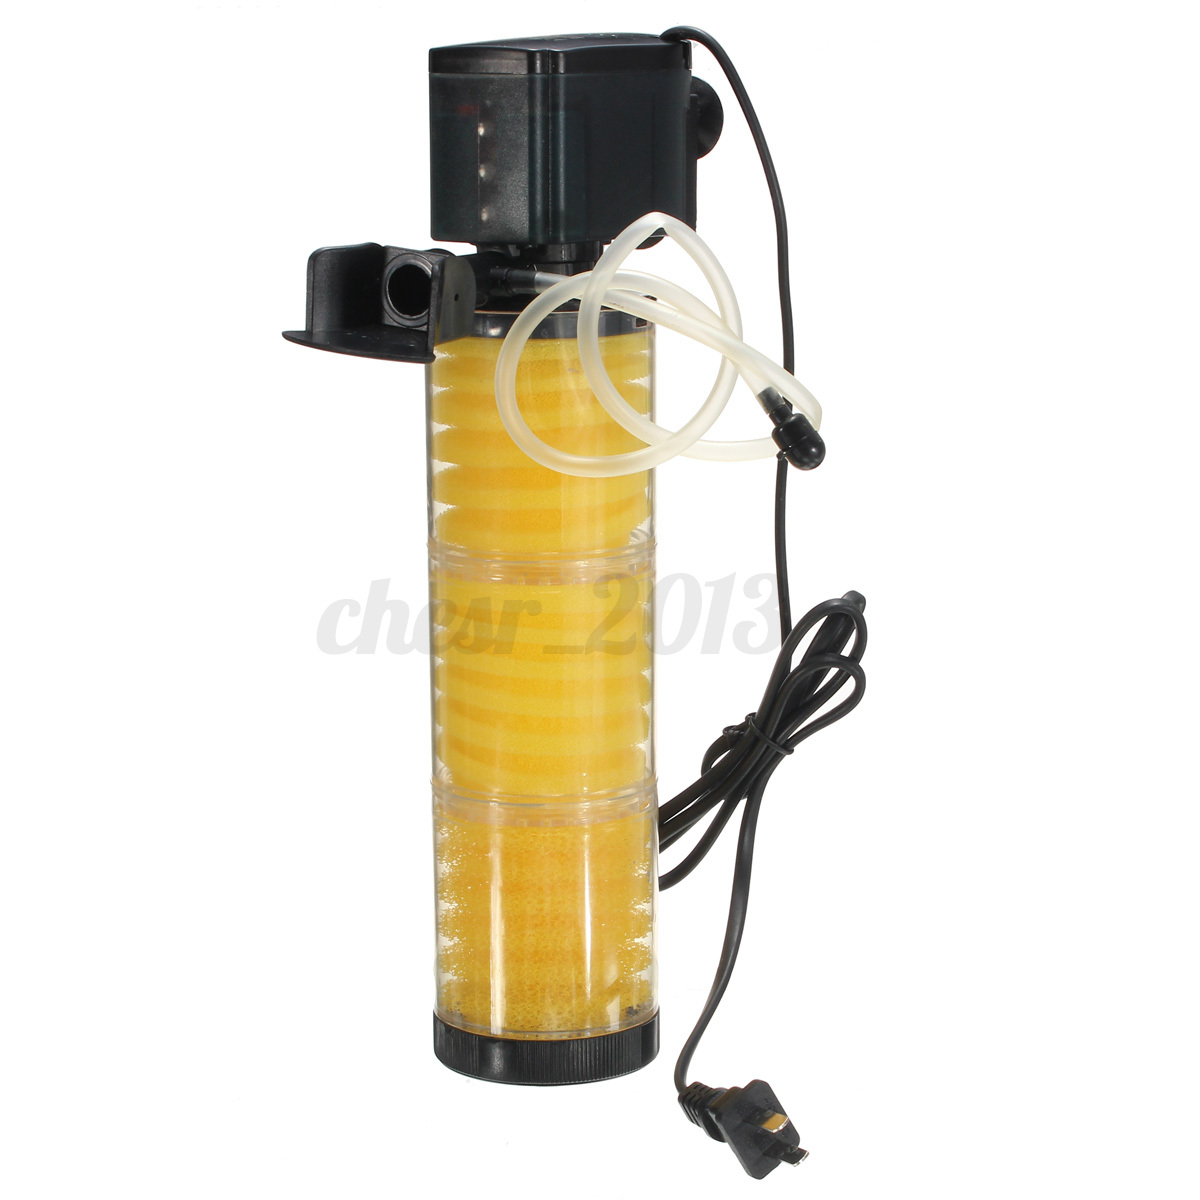 Fish tank filter not pumping water new small fish tank for Fish tank water pump